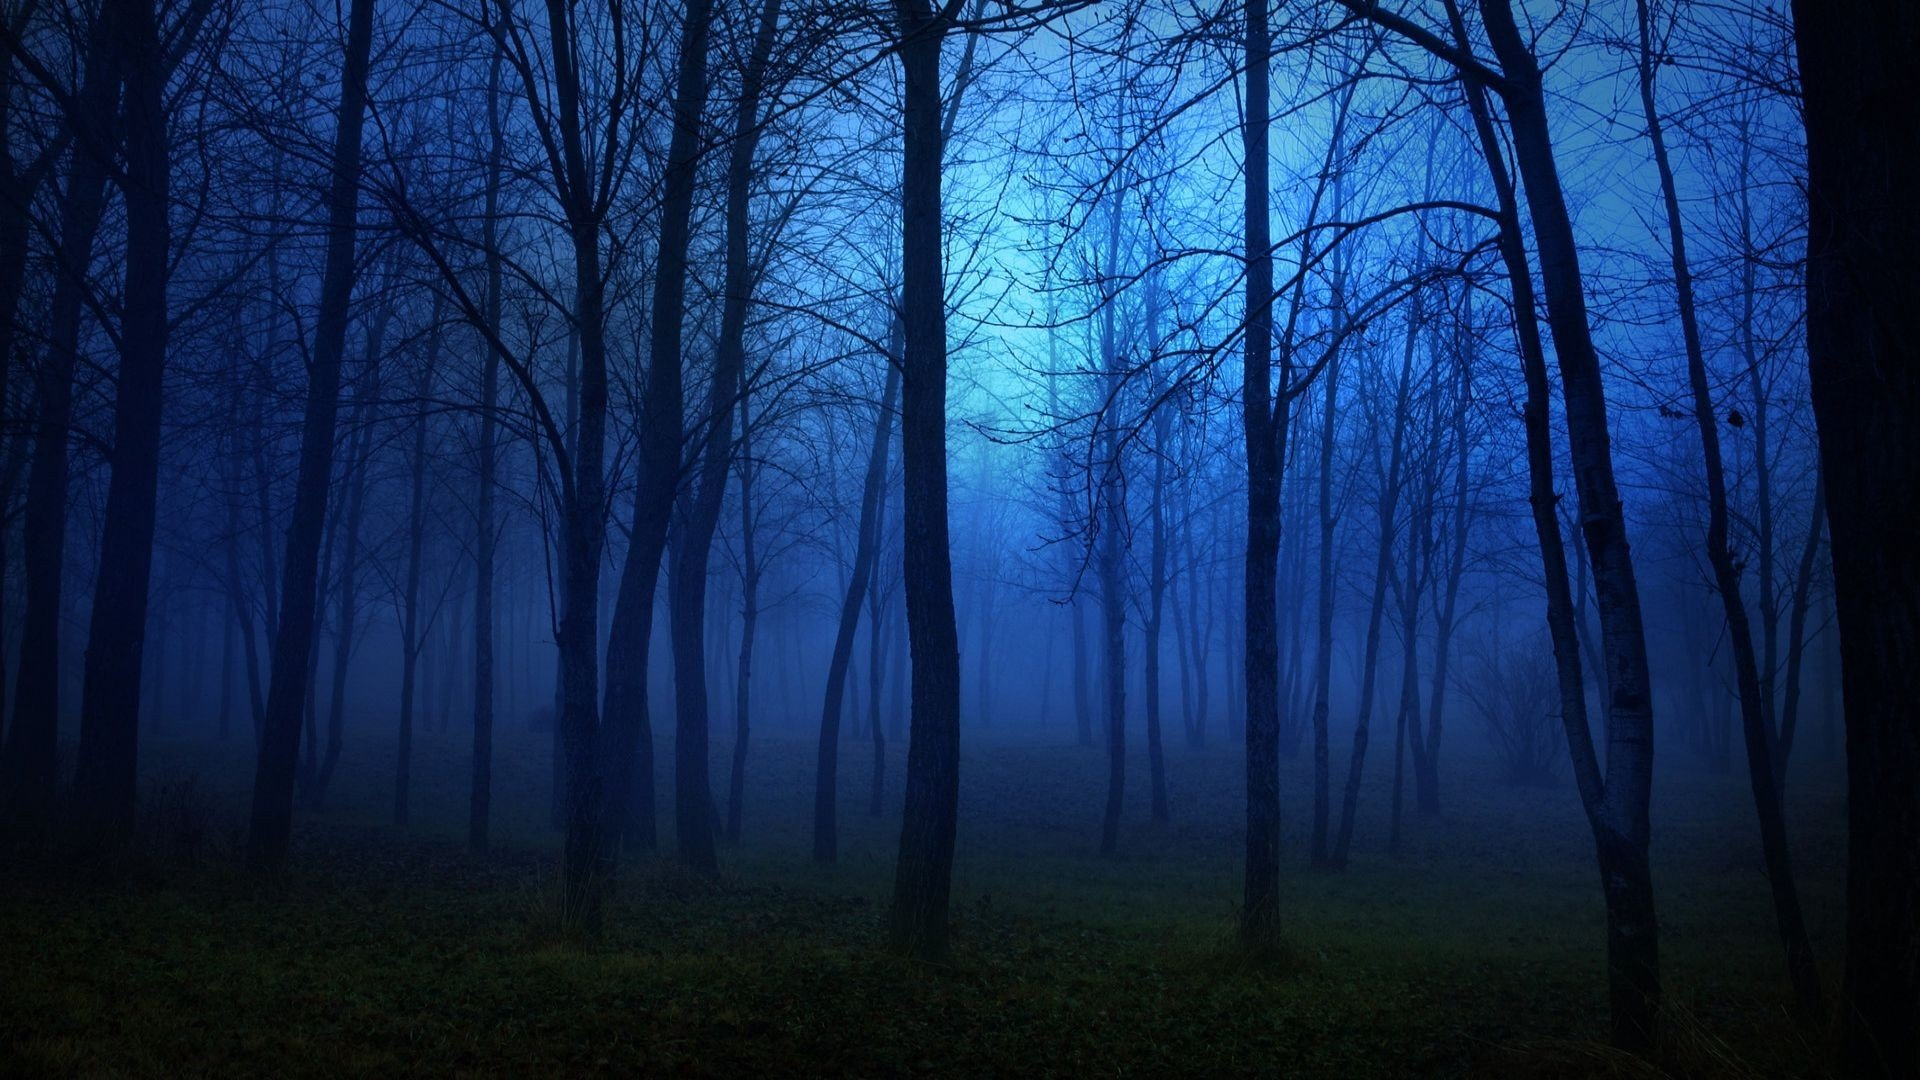 darkdownload-hd-wallpapers-beautiful-nature-landscape-spooky-night-tree-nature-fog-mist-high-definition-green-mac-backgrounds-forestforest.jpg